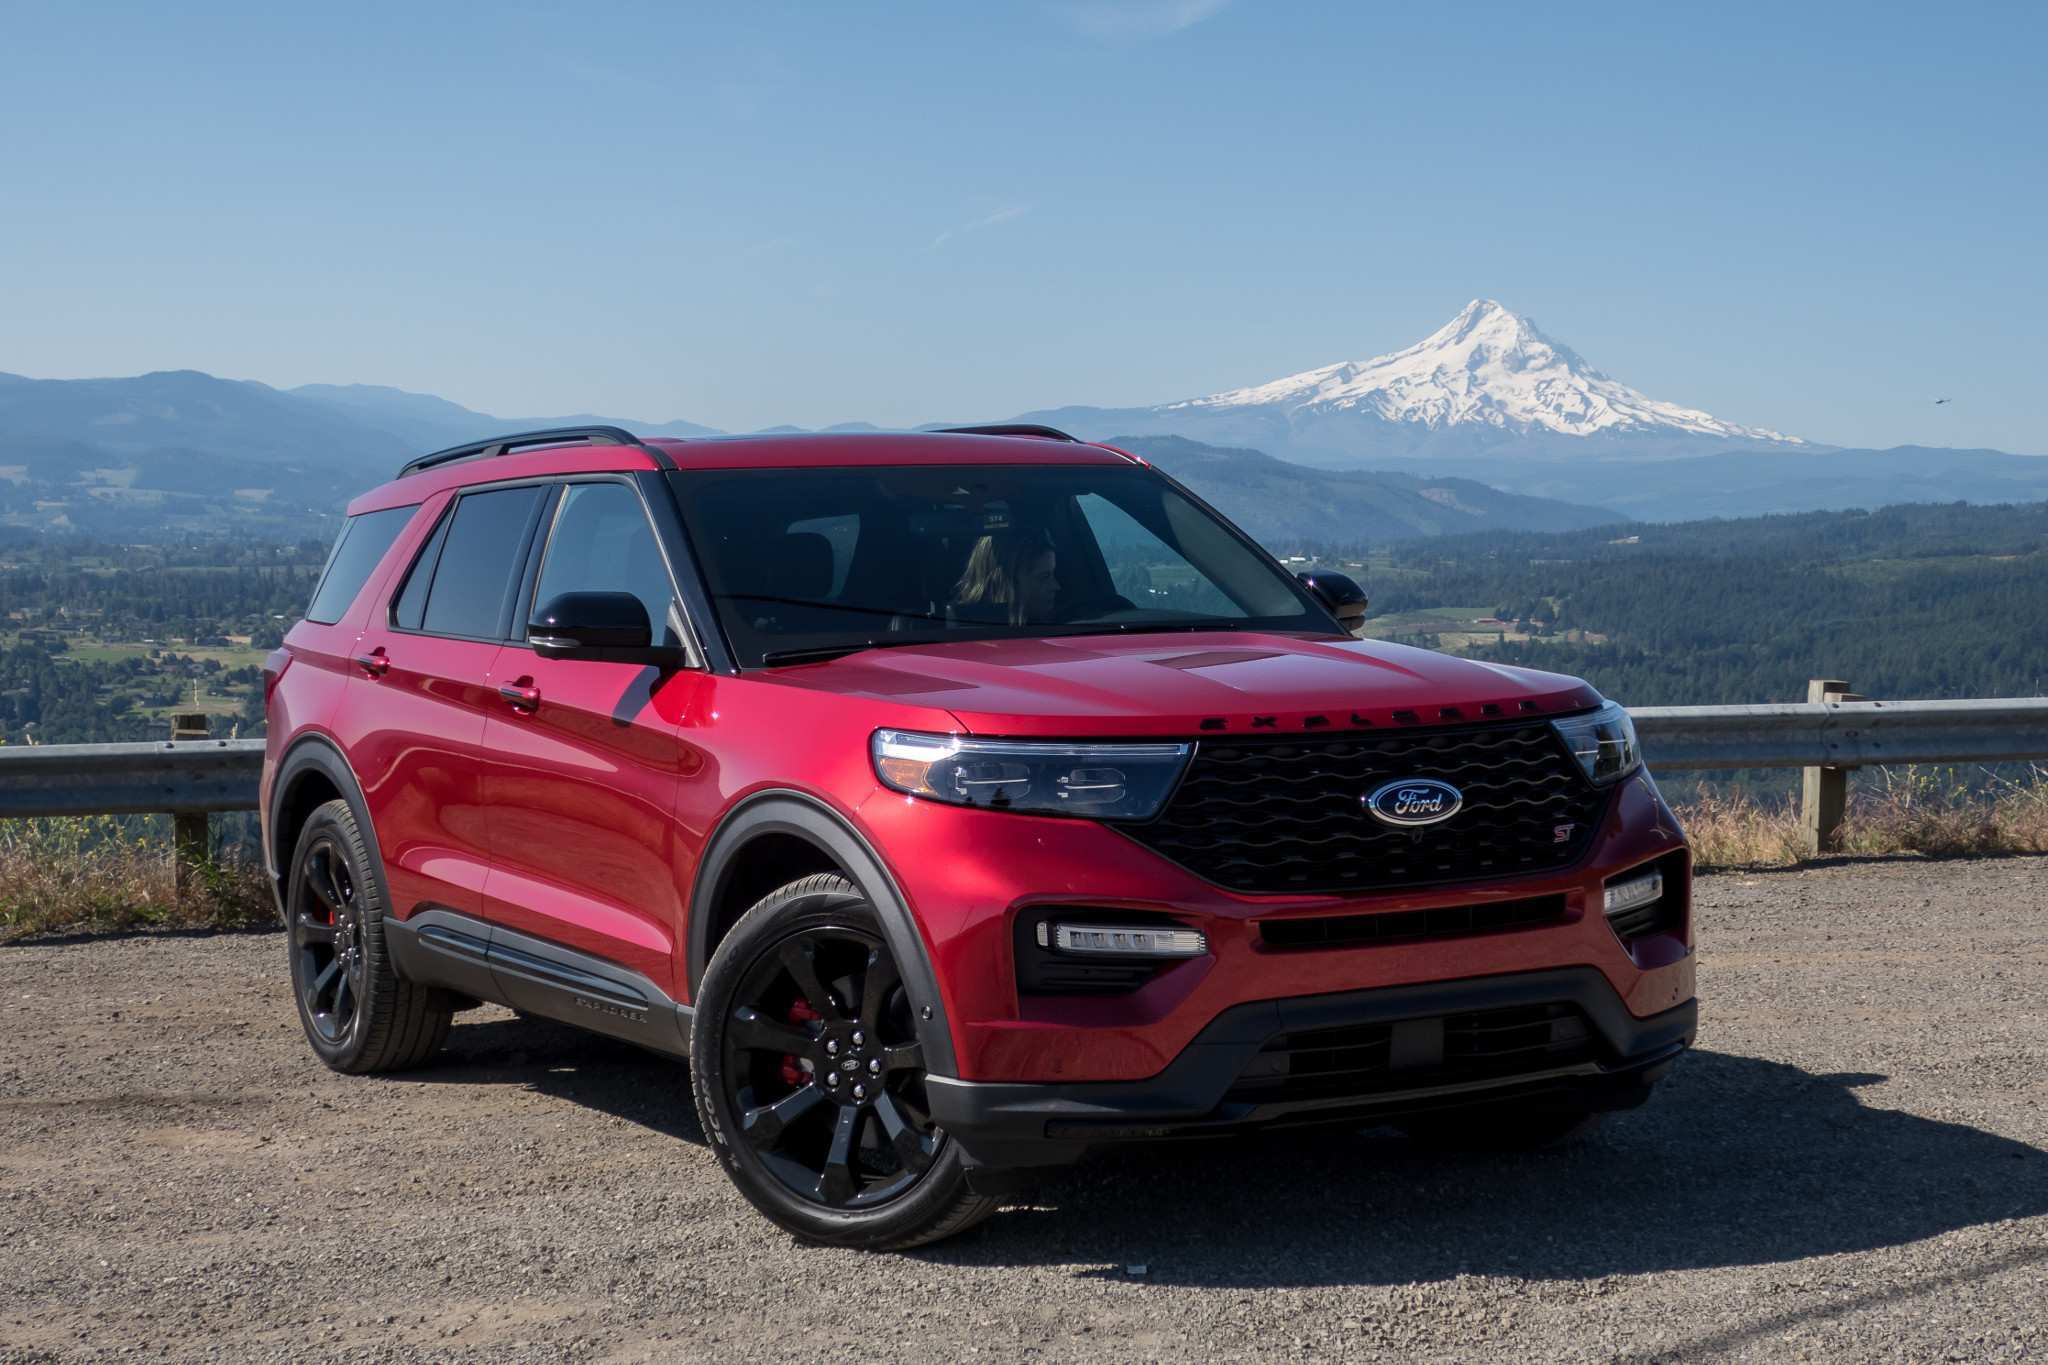 22 New Ford News 2020 Price And Release Date